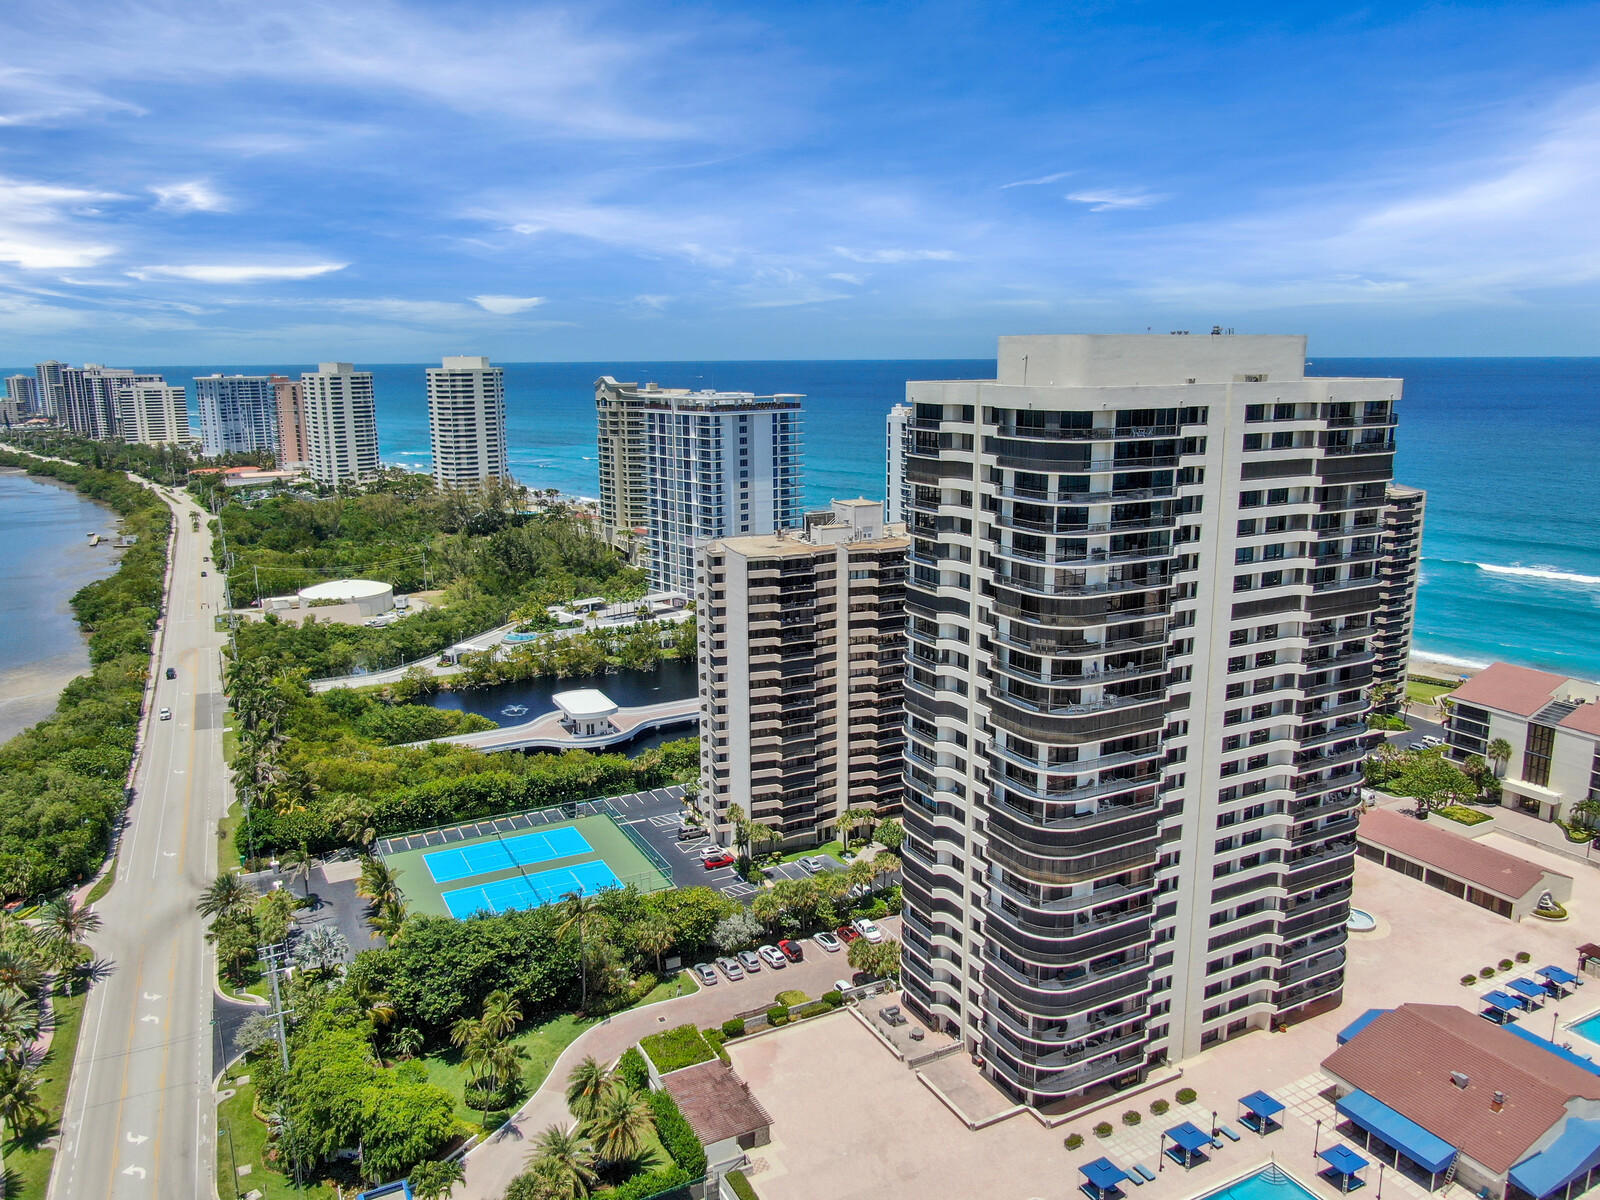 Updated 3BR 4BA at Martinique II West Tower 503. This spacious elegant condo with wrap-around balconies w/palm treed views from 5th FL NW corner overlooking intracoastal waterway. Enjoy panoramic western sunsets + night lights across pastel evening skies. Offered furnished. King bed master, Queen bed BR 2,  Full Size Sofa Bed Den/3rd BR. Kitchen area features a sunlit eat In breakfast area. Interior Full Size Laundry. Tankless Water Heater.  Hurricane Shutters,  2 Pets 20 lbs and under welcome! Garage Parking #85. Amenities include the ''Q'' Poolside Restaurant & Bar exclusively for residents, 2 heated pools for families and adults, jacuzzi hot tub, 2 tennis courts + fitness centers. Residents lounge w/catering kitchen, billiards, card room + library, 24 hr guard gate + lobby concierge.